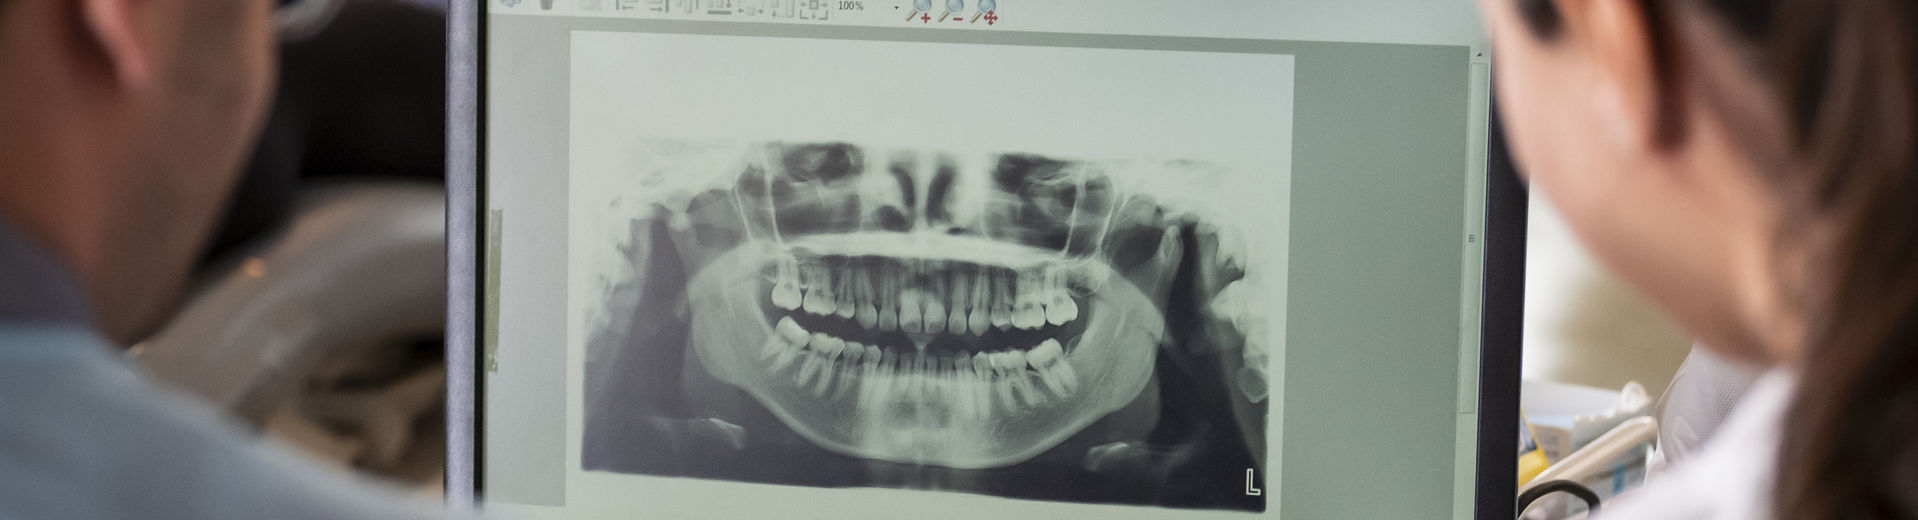 Two dentistry students review an x-ray of teeth and gums.